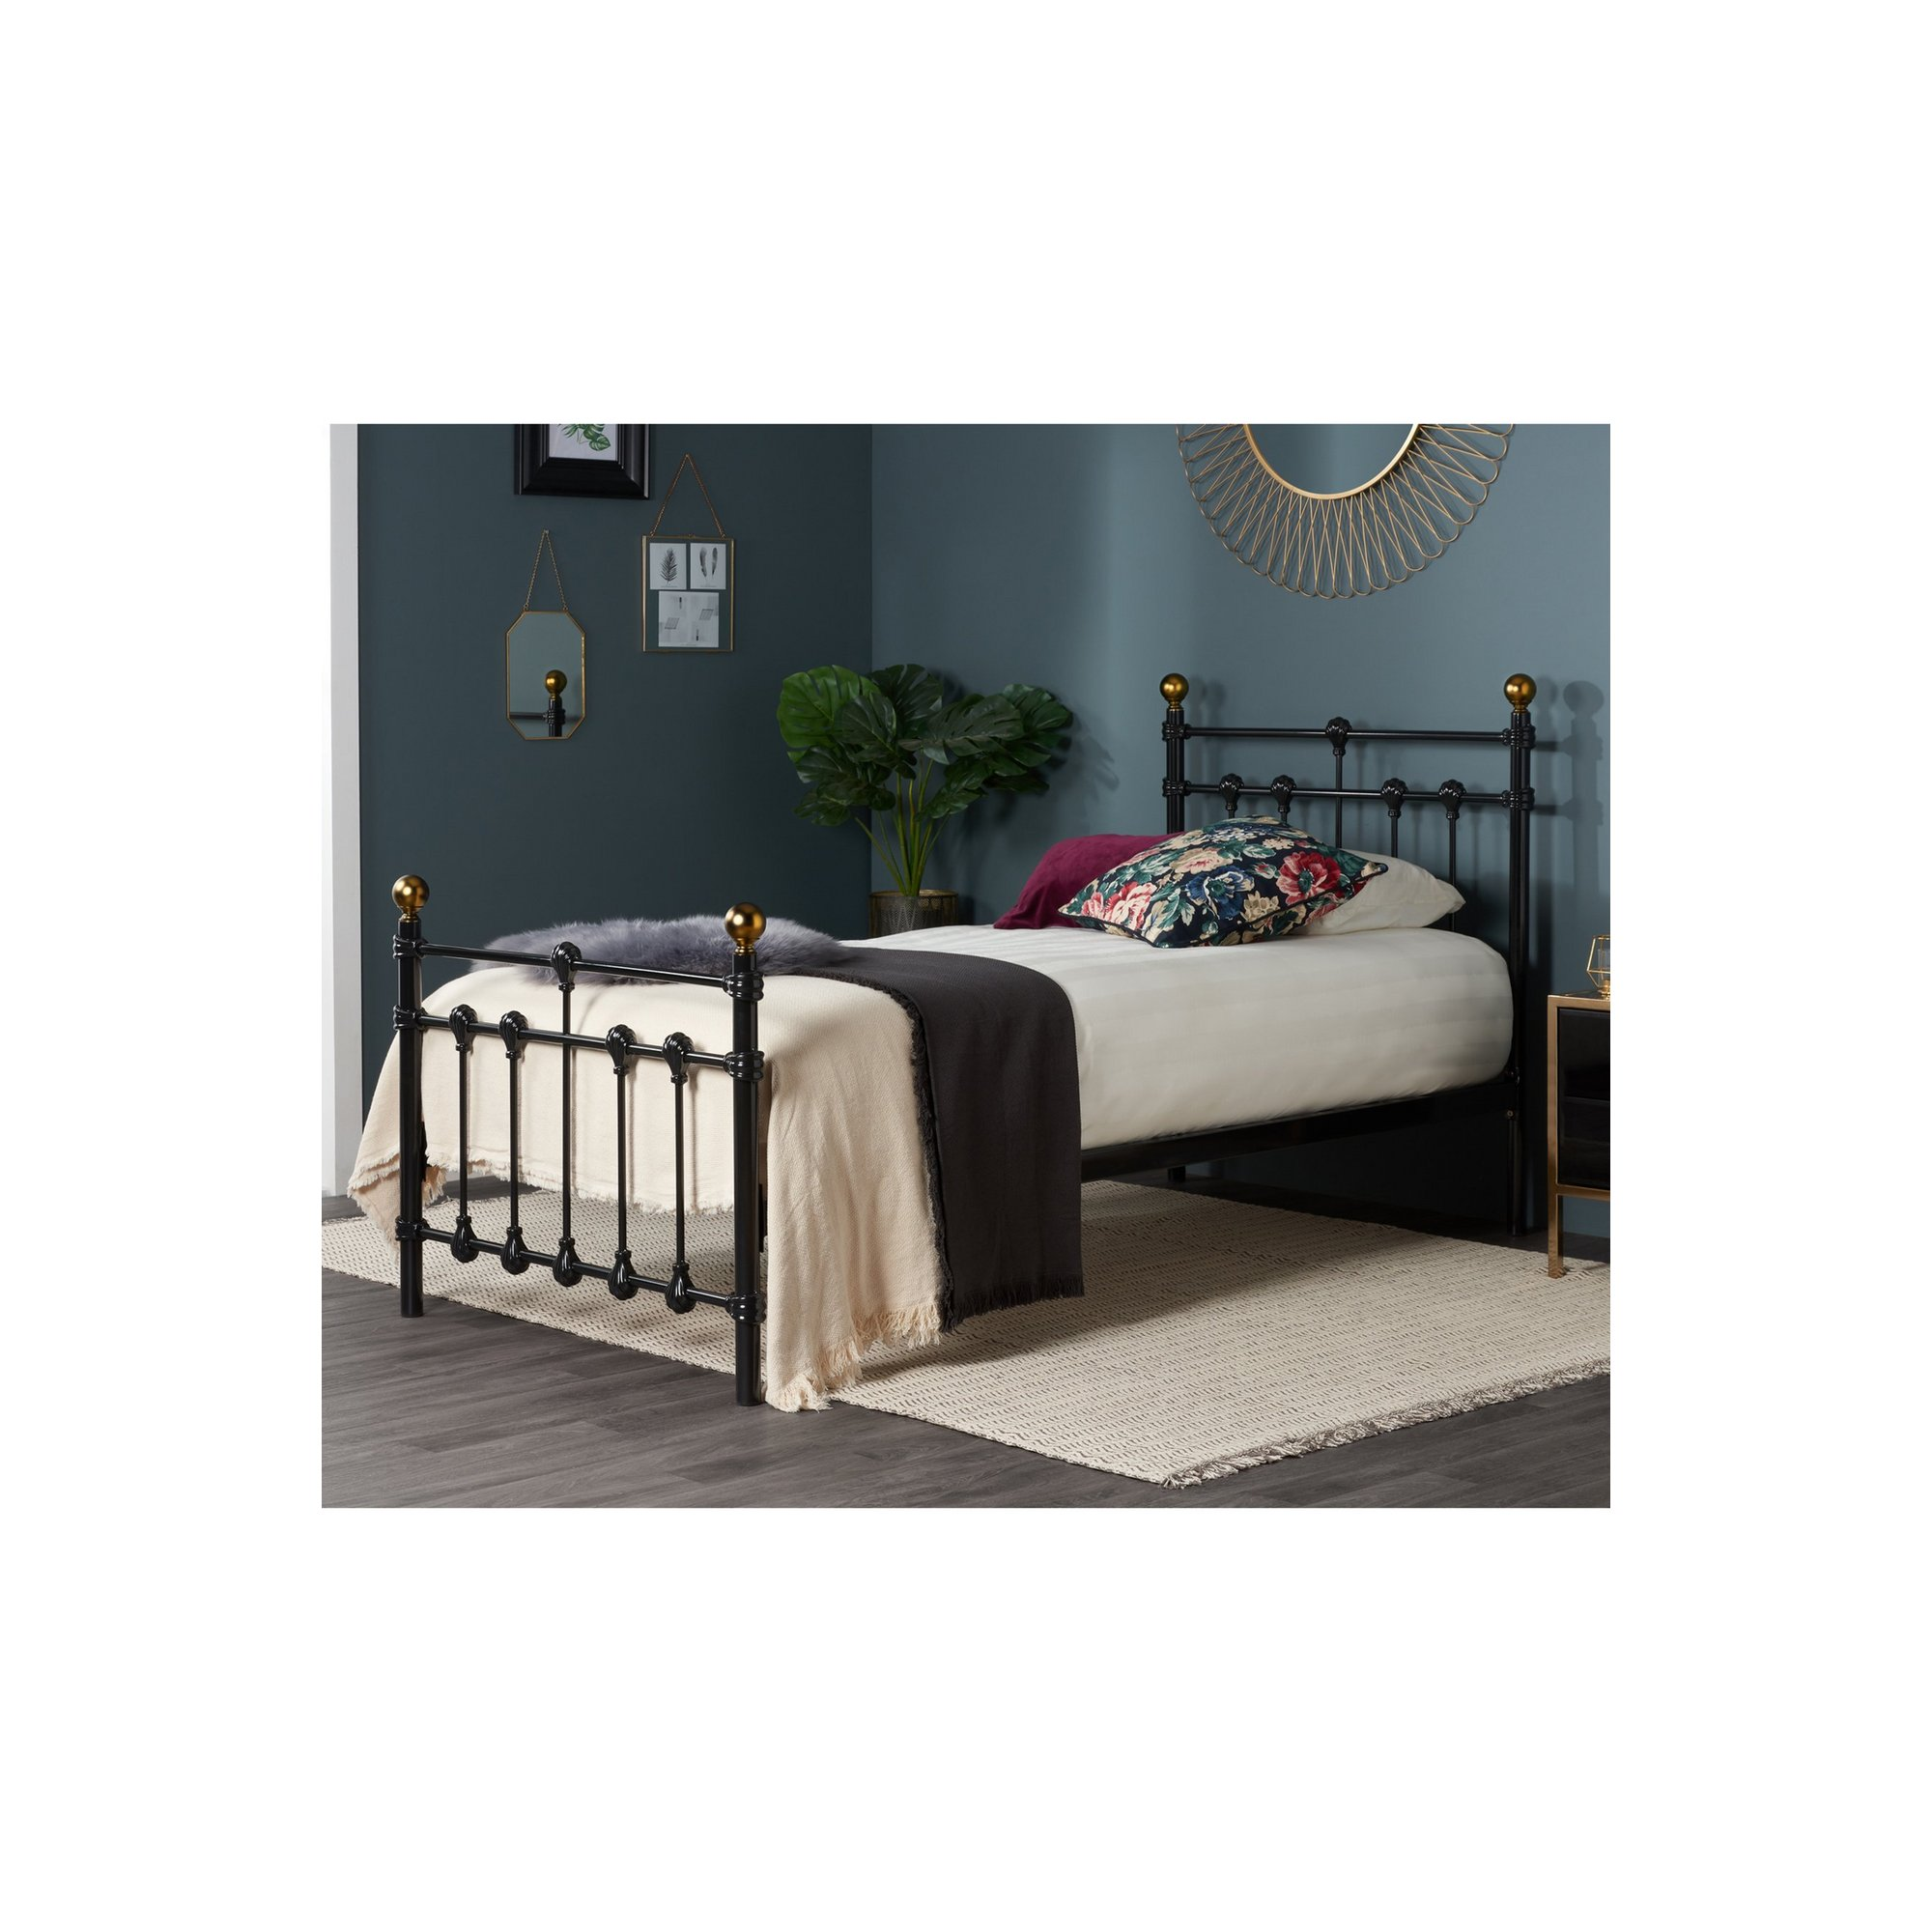 Image of Atlas Bed